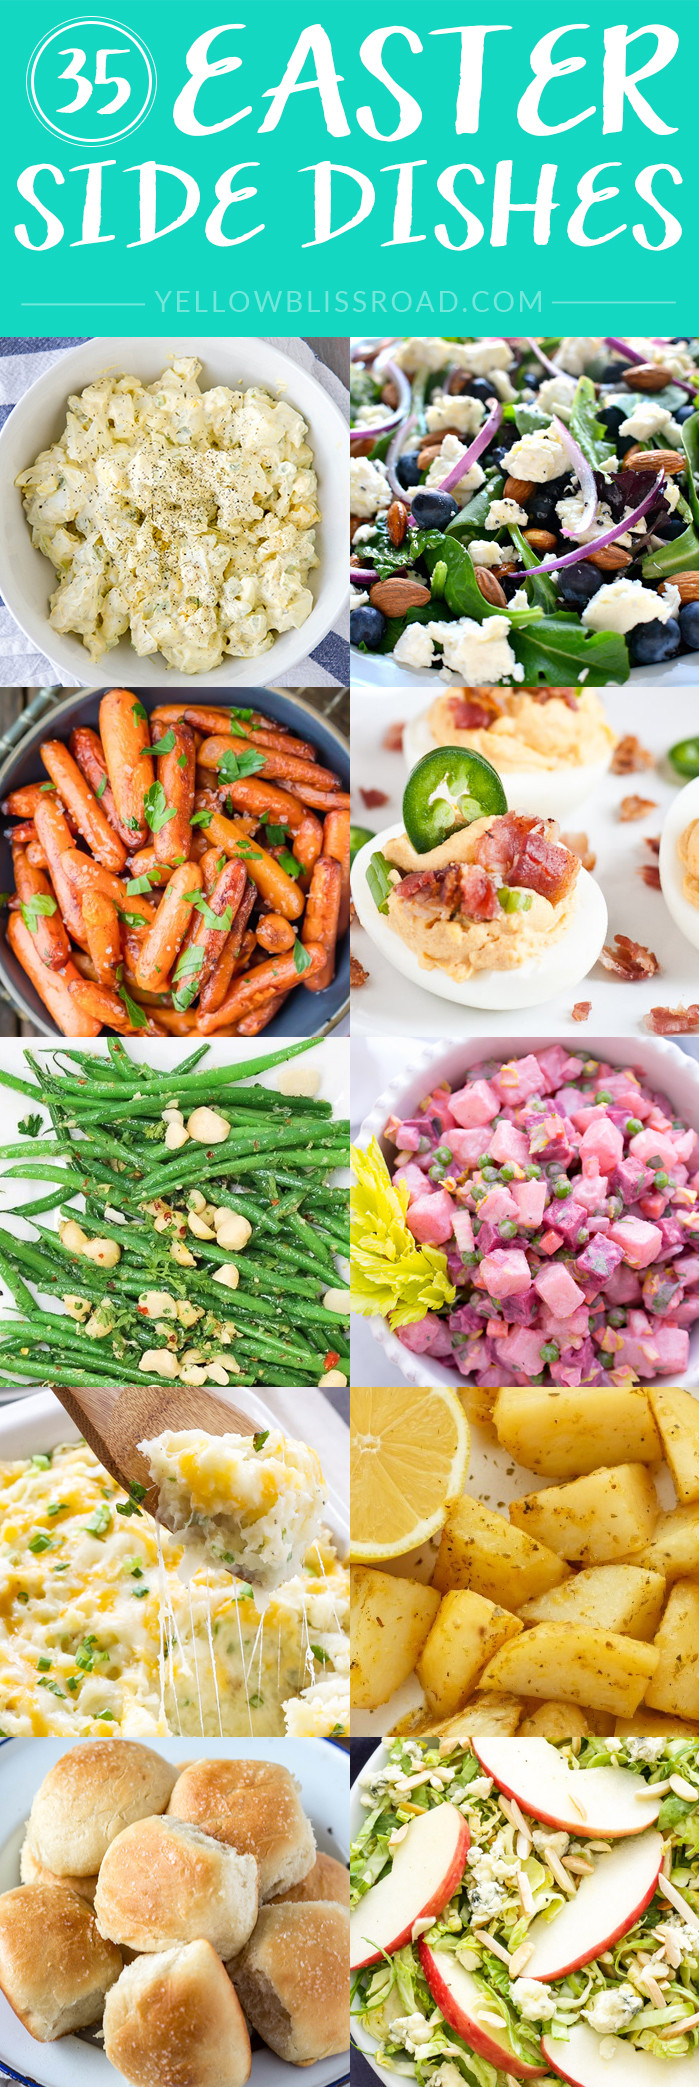 Food For Easter Dinner  Easter Side Dishes More than 50 of the Best Sides for